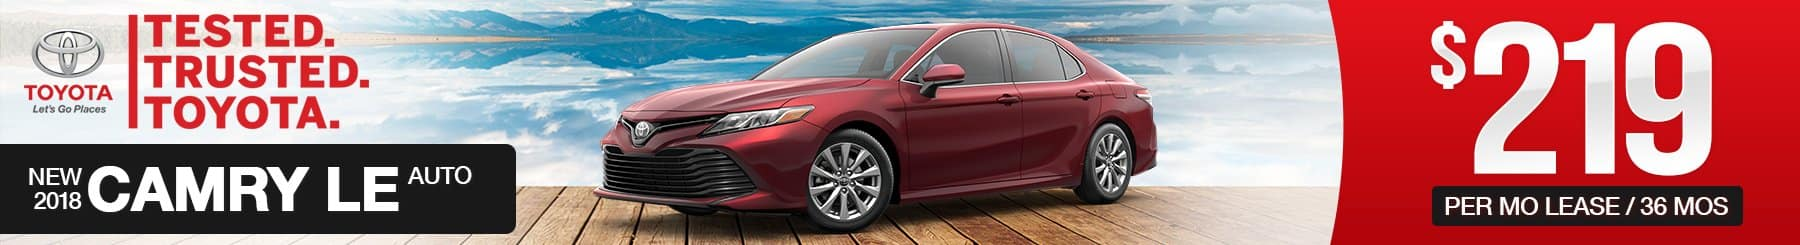 Toyota-Camry-Lease-Specials